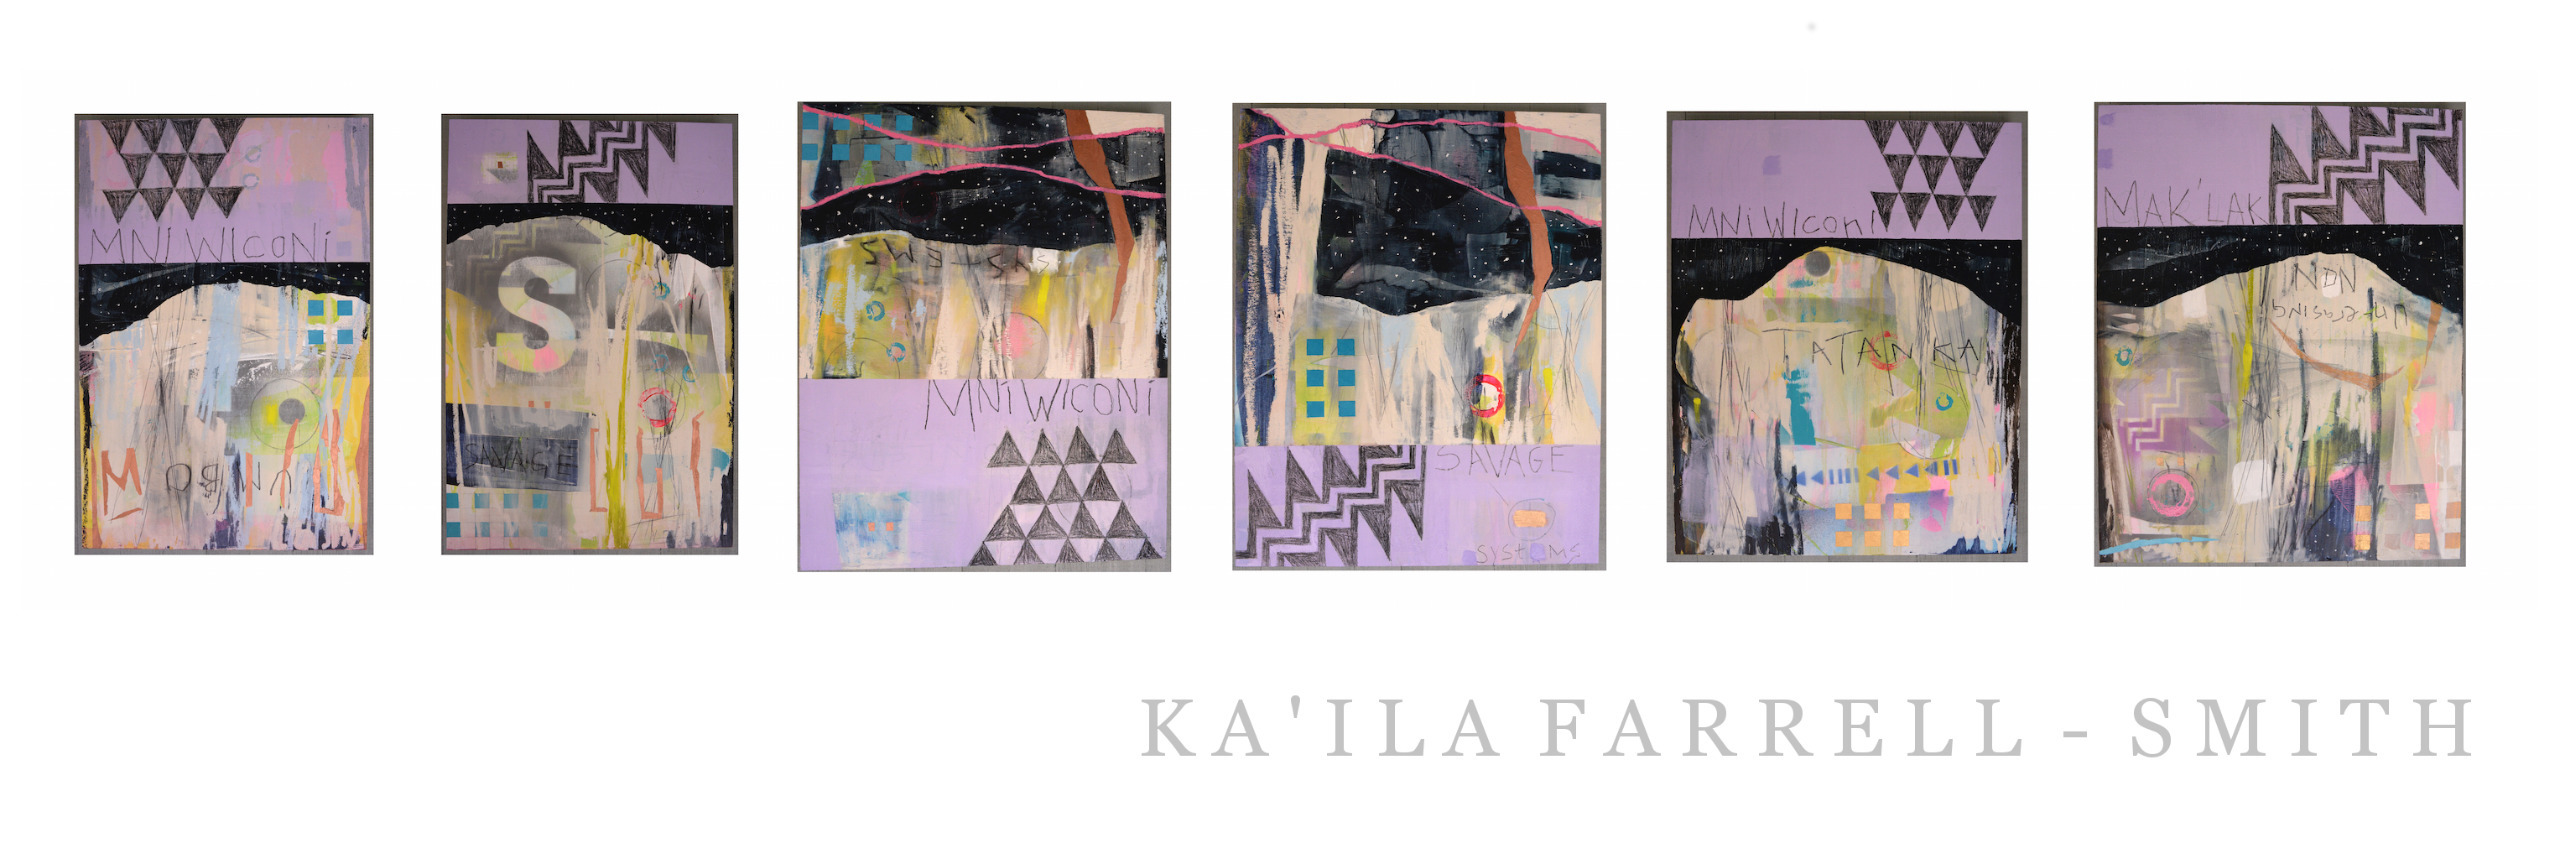 Ka'ila Farrell-Smith (@kailafarrellsmith) Cover Image